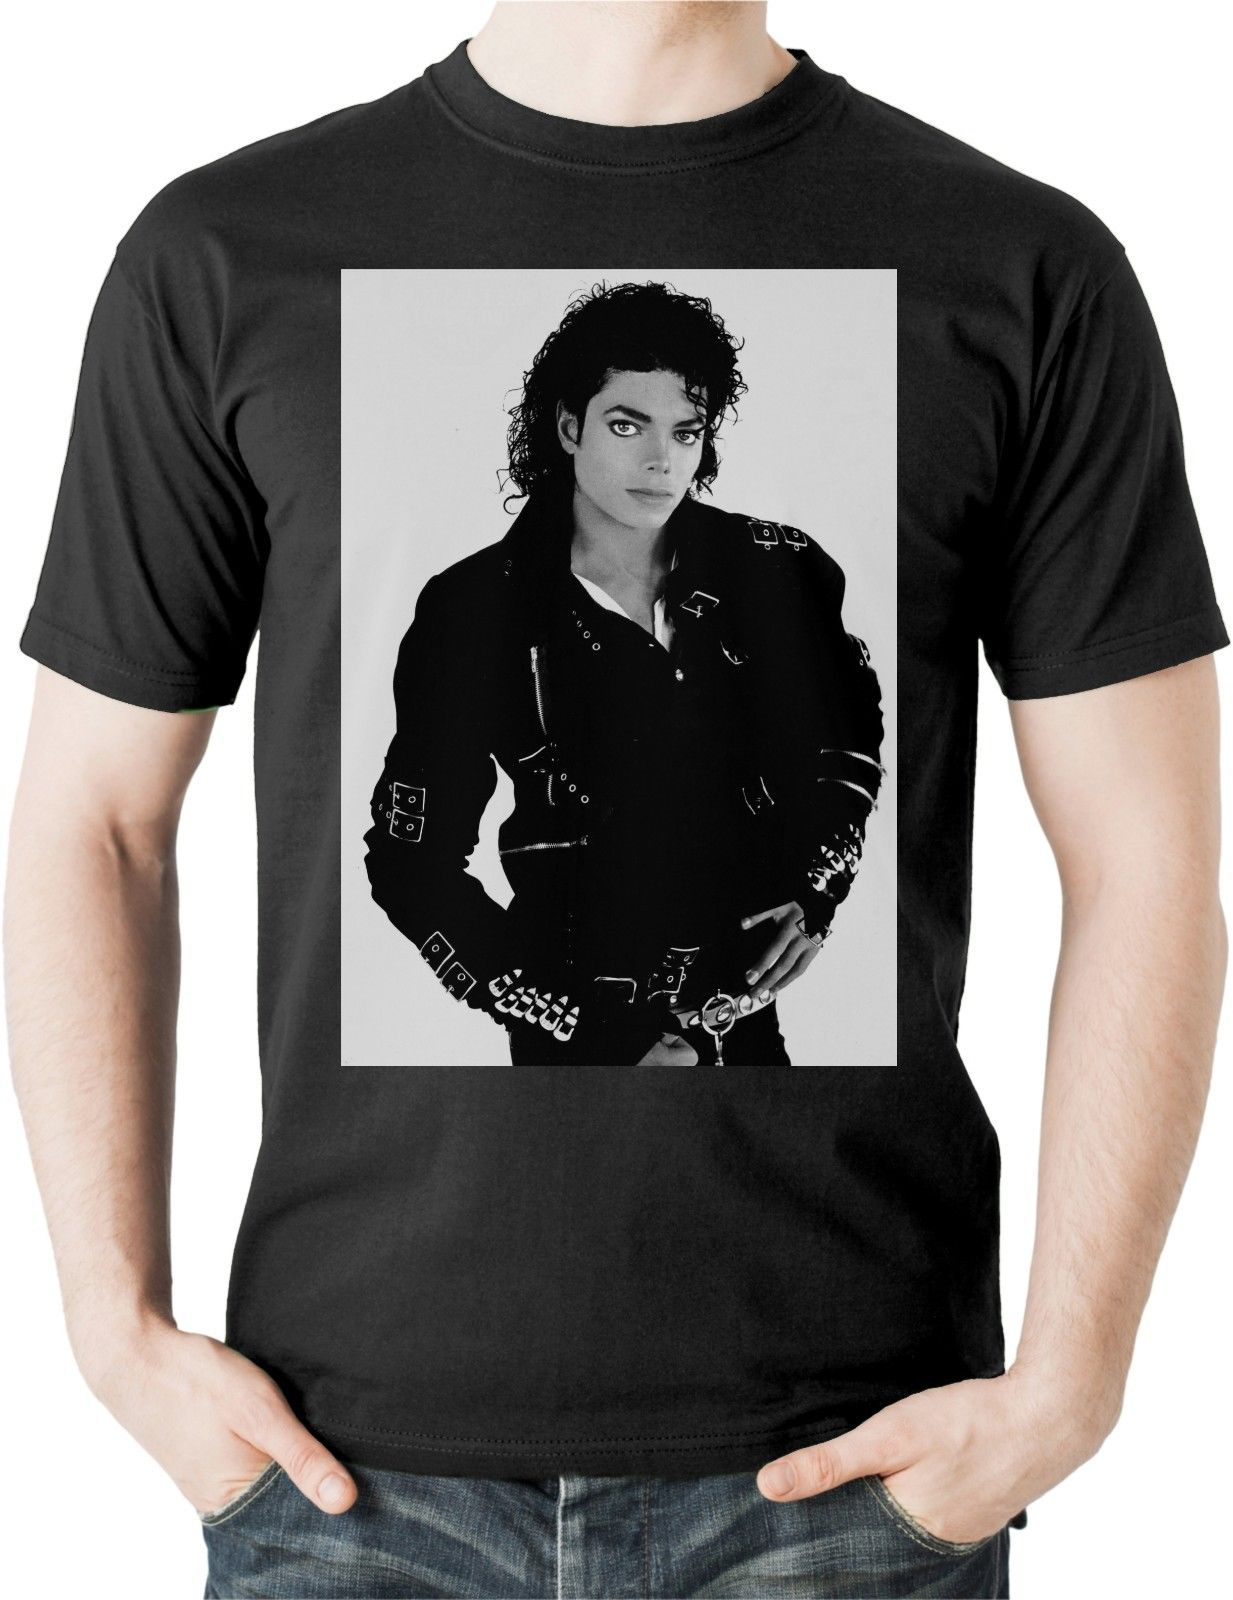 c025b99d0 Michael Jackson T Shirt King Of Pop Thriller Bad Legend Top Tee Music MJ  Unisex-in T-Shirts from Men's Clothing & Accessories on Aliexpress.com |  Alibaba ...